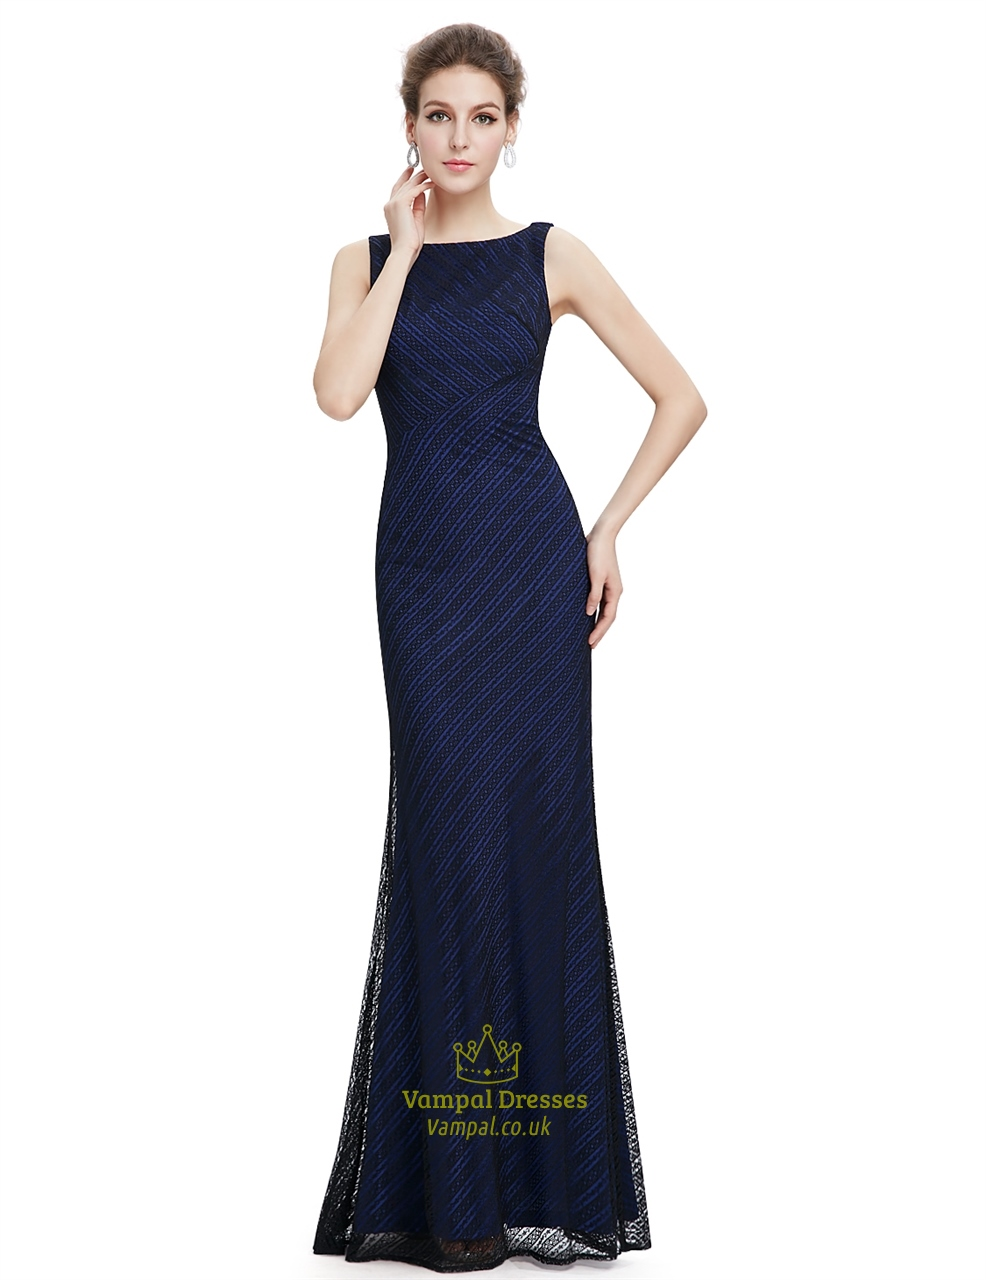 Navy blue lace mermaid long bridesmaid dress vampal dresses for Blue long dress wedding